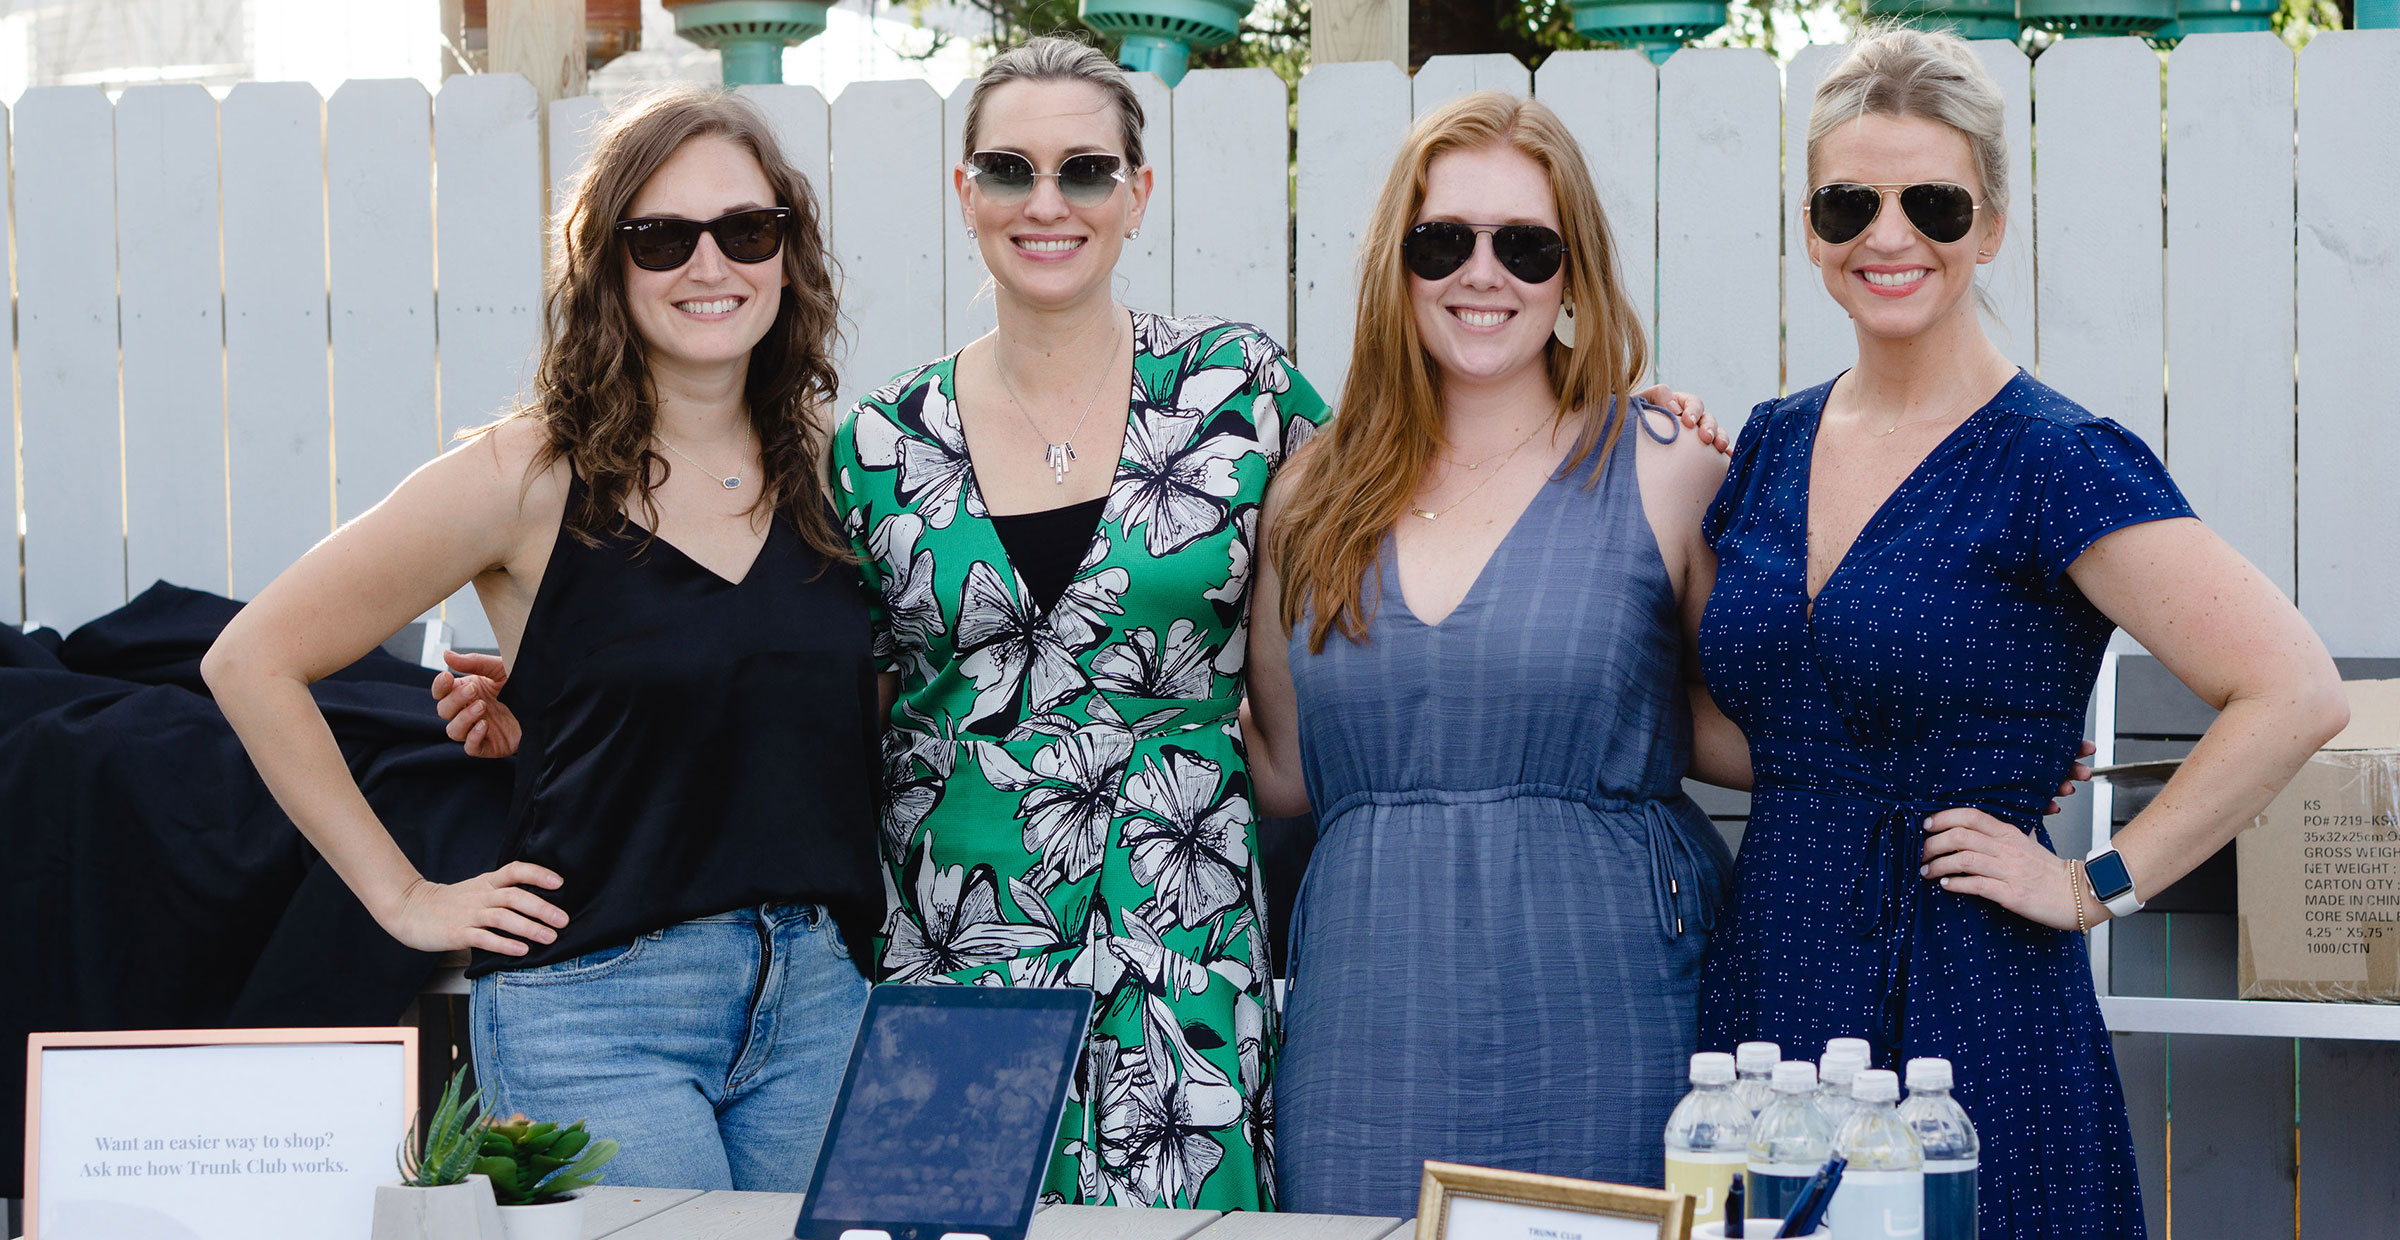 Summer Social with Trunk Club and Kendra Scott event